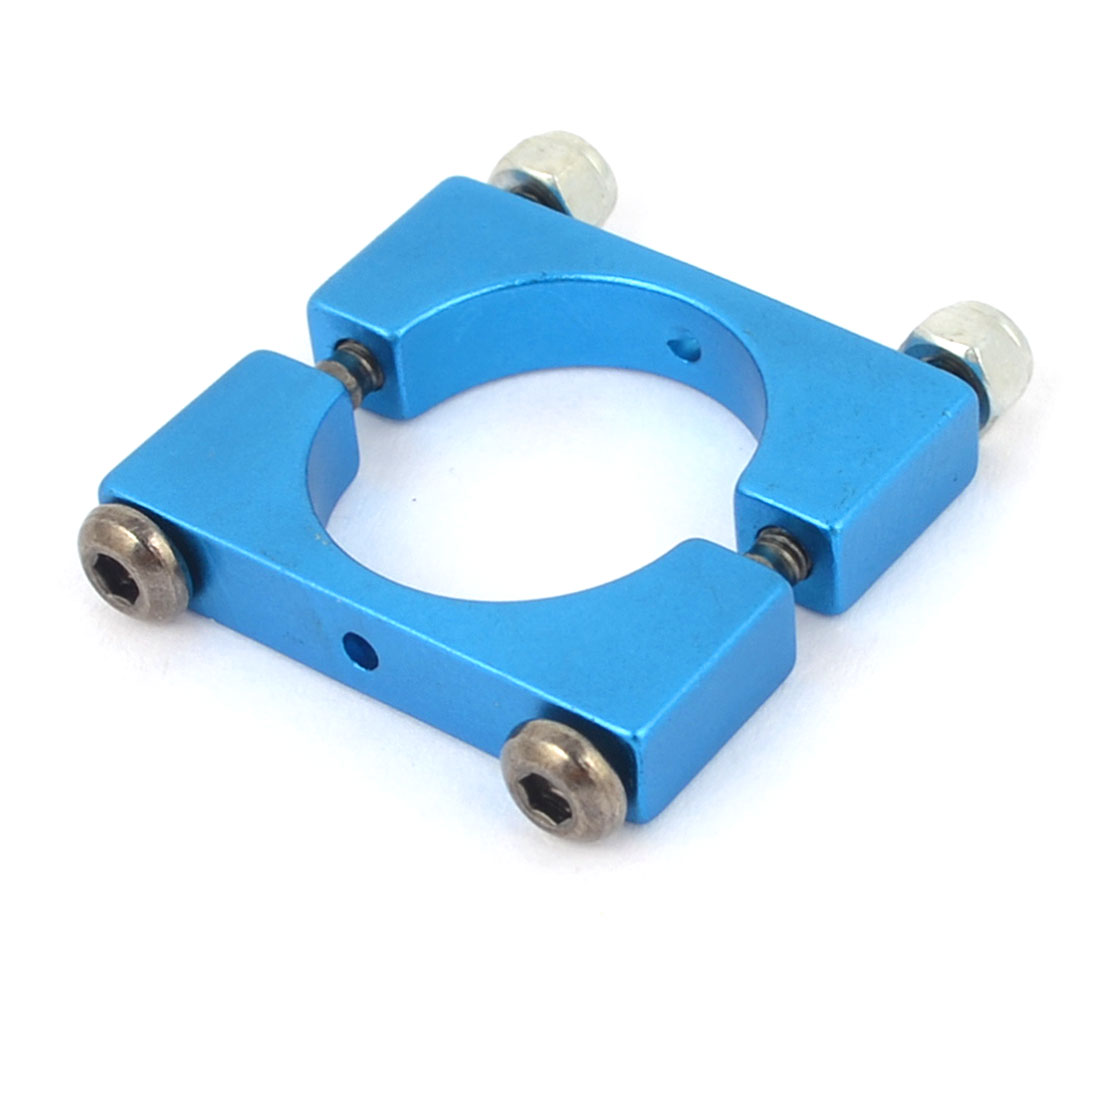 16mm Blue Aluminum Clamp for Carbon Fiber Tube Quadcopter Hexacopter Octocopter